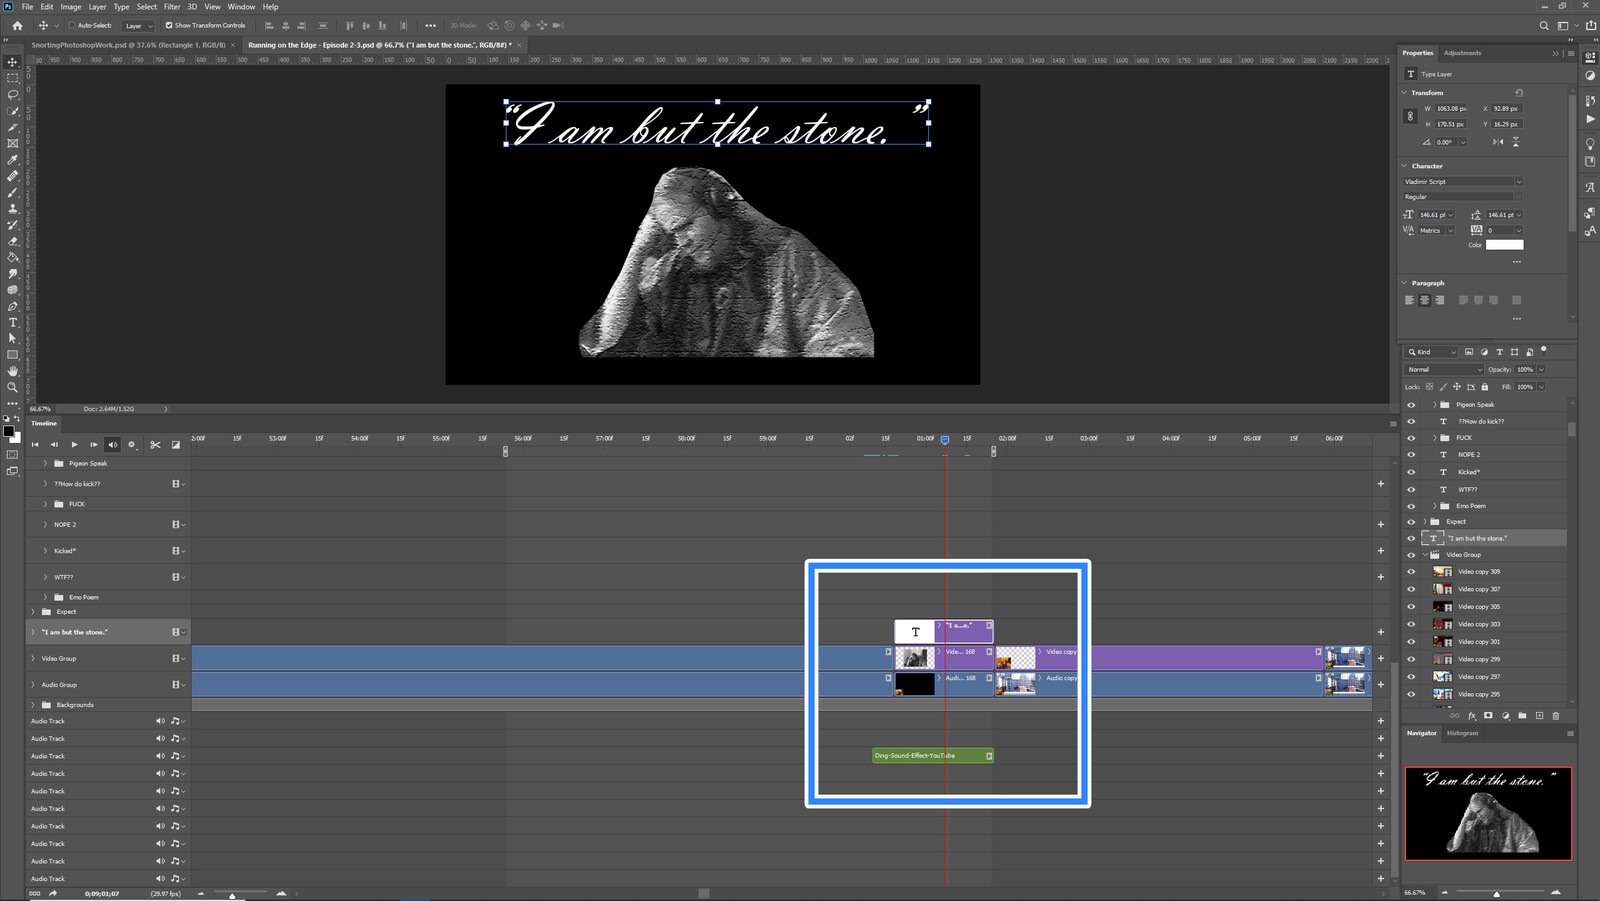 """The """"I Am The Stone"""" visual effect within Photoshop video editor"""